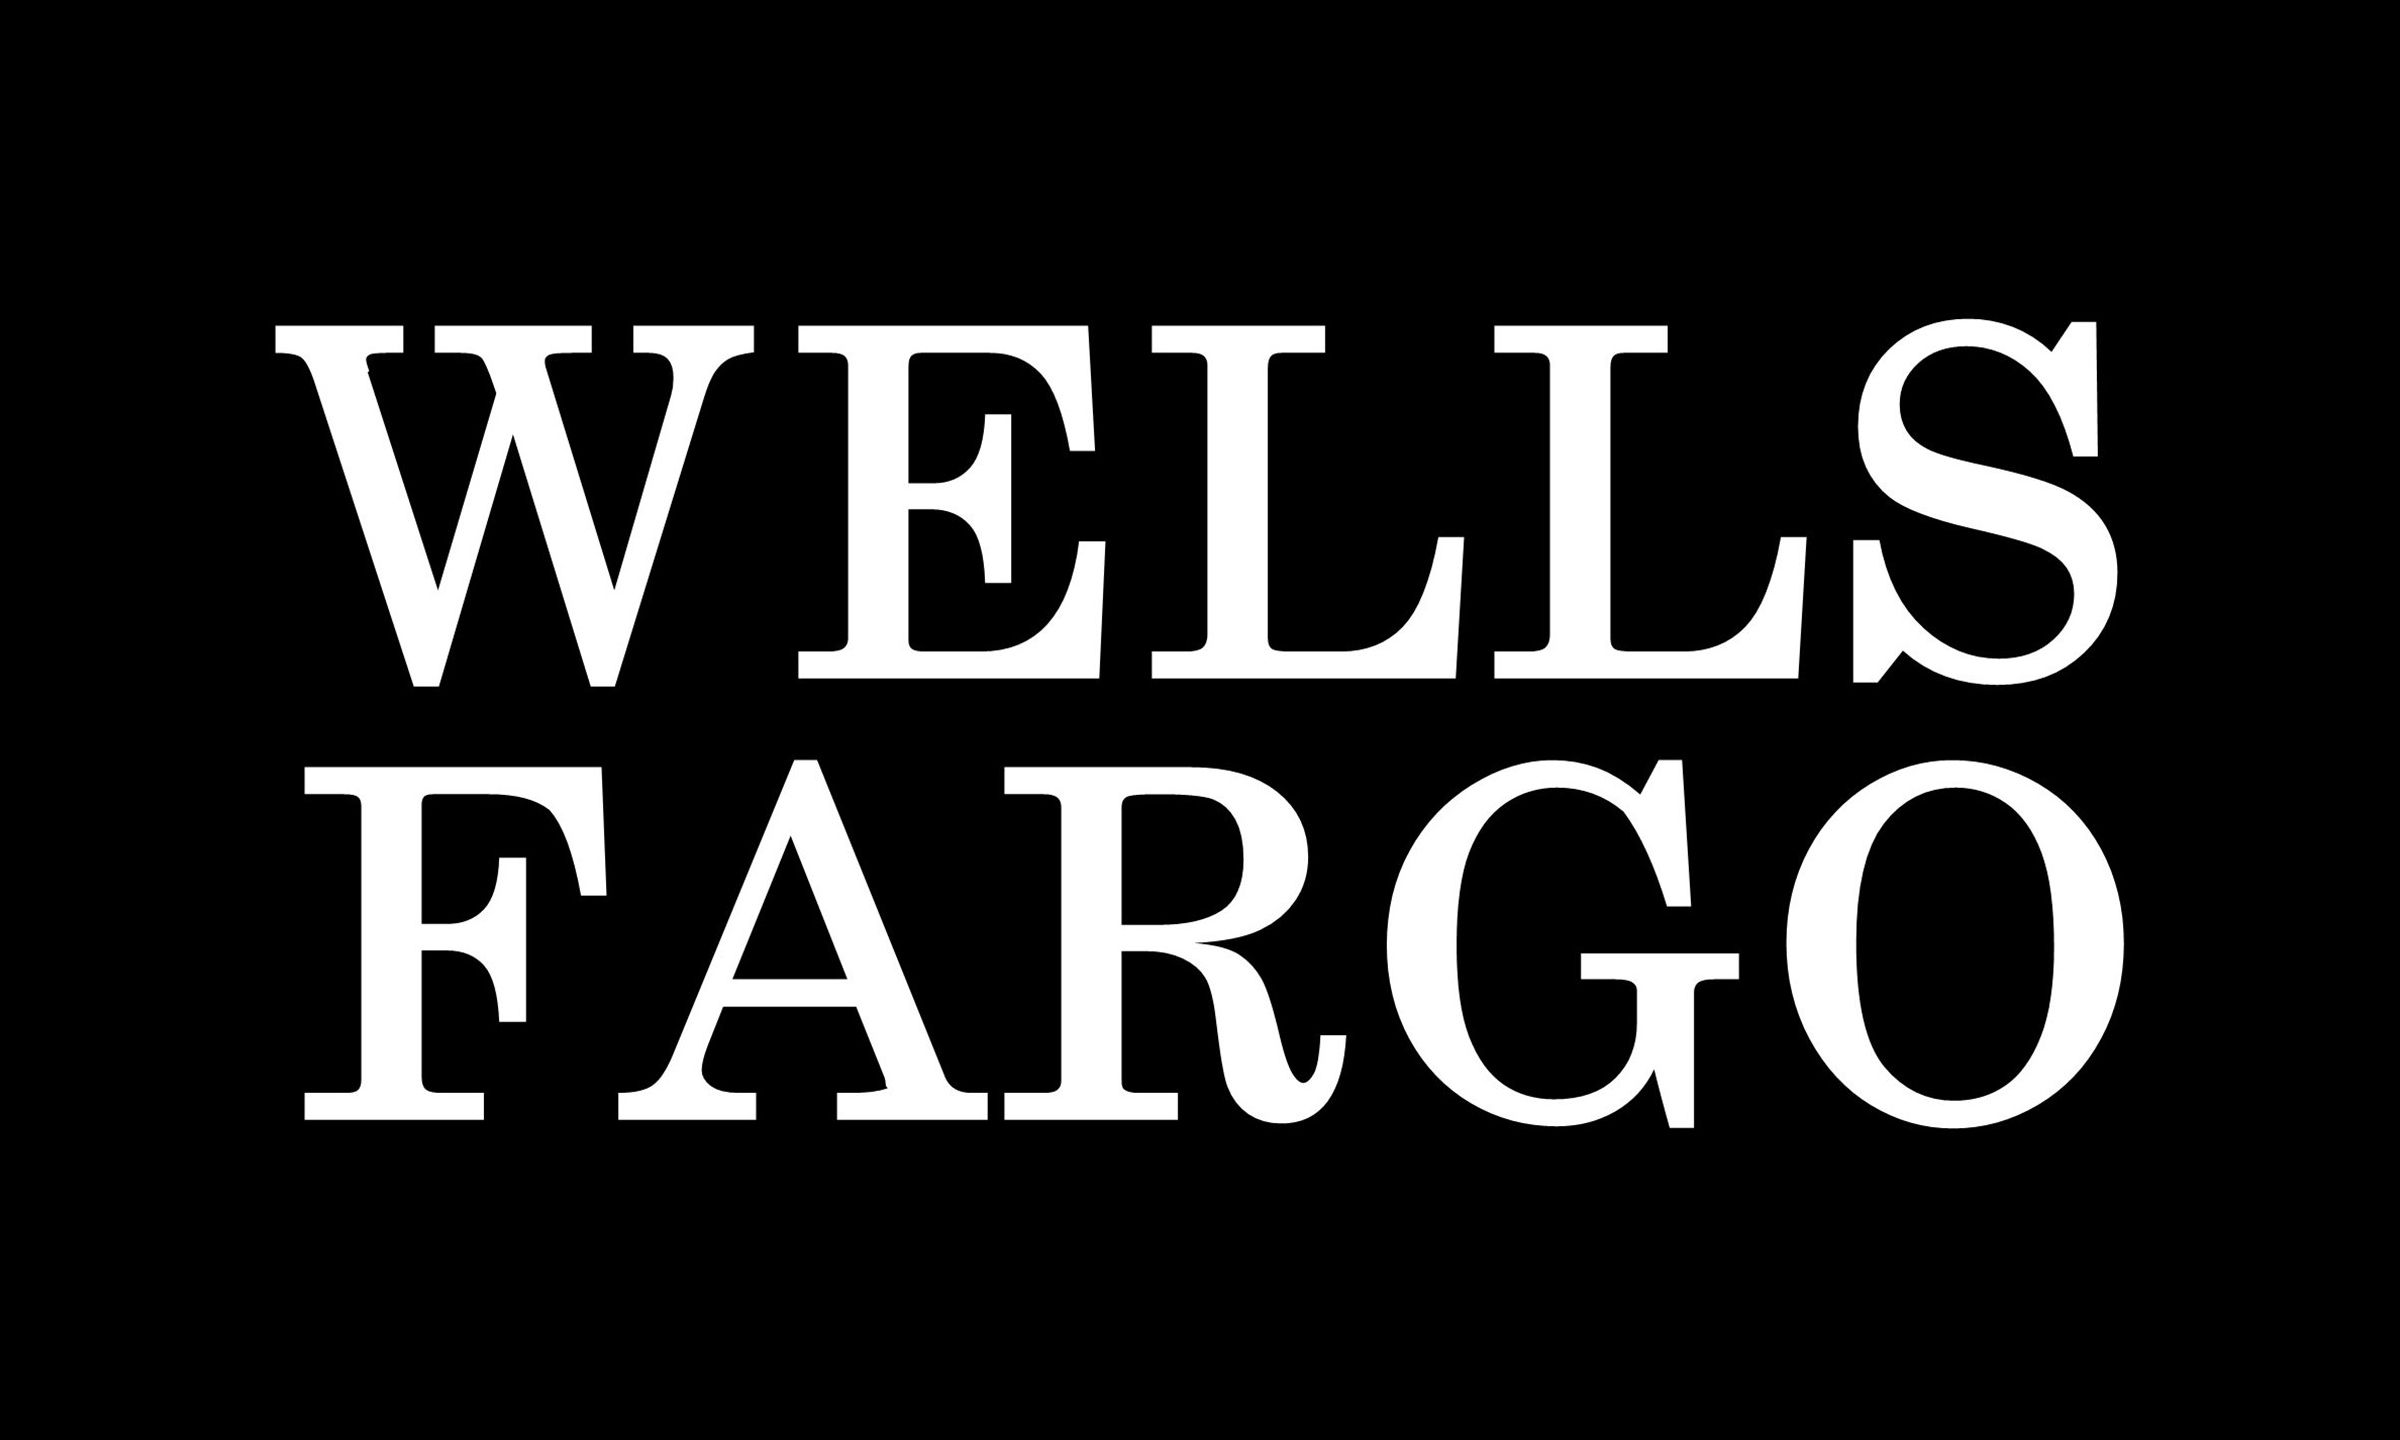 Wells Fargo Logo, Wells Fargo Symbol, Meaning, History And. Military Death Statistics Test Your Internet. Credit Card Disclosures Water Damage Recovery. Provider Data Management Healthcare. Online Bachelors Degree In Biology. Local Web Design Companies Credit Card Specs. Accredited Paralegal Certificate Programs. Medical Billing And Coding Schools. Basal Melanoma Skin Cancer New Home Insurance